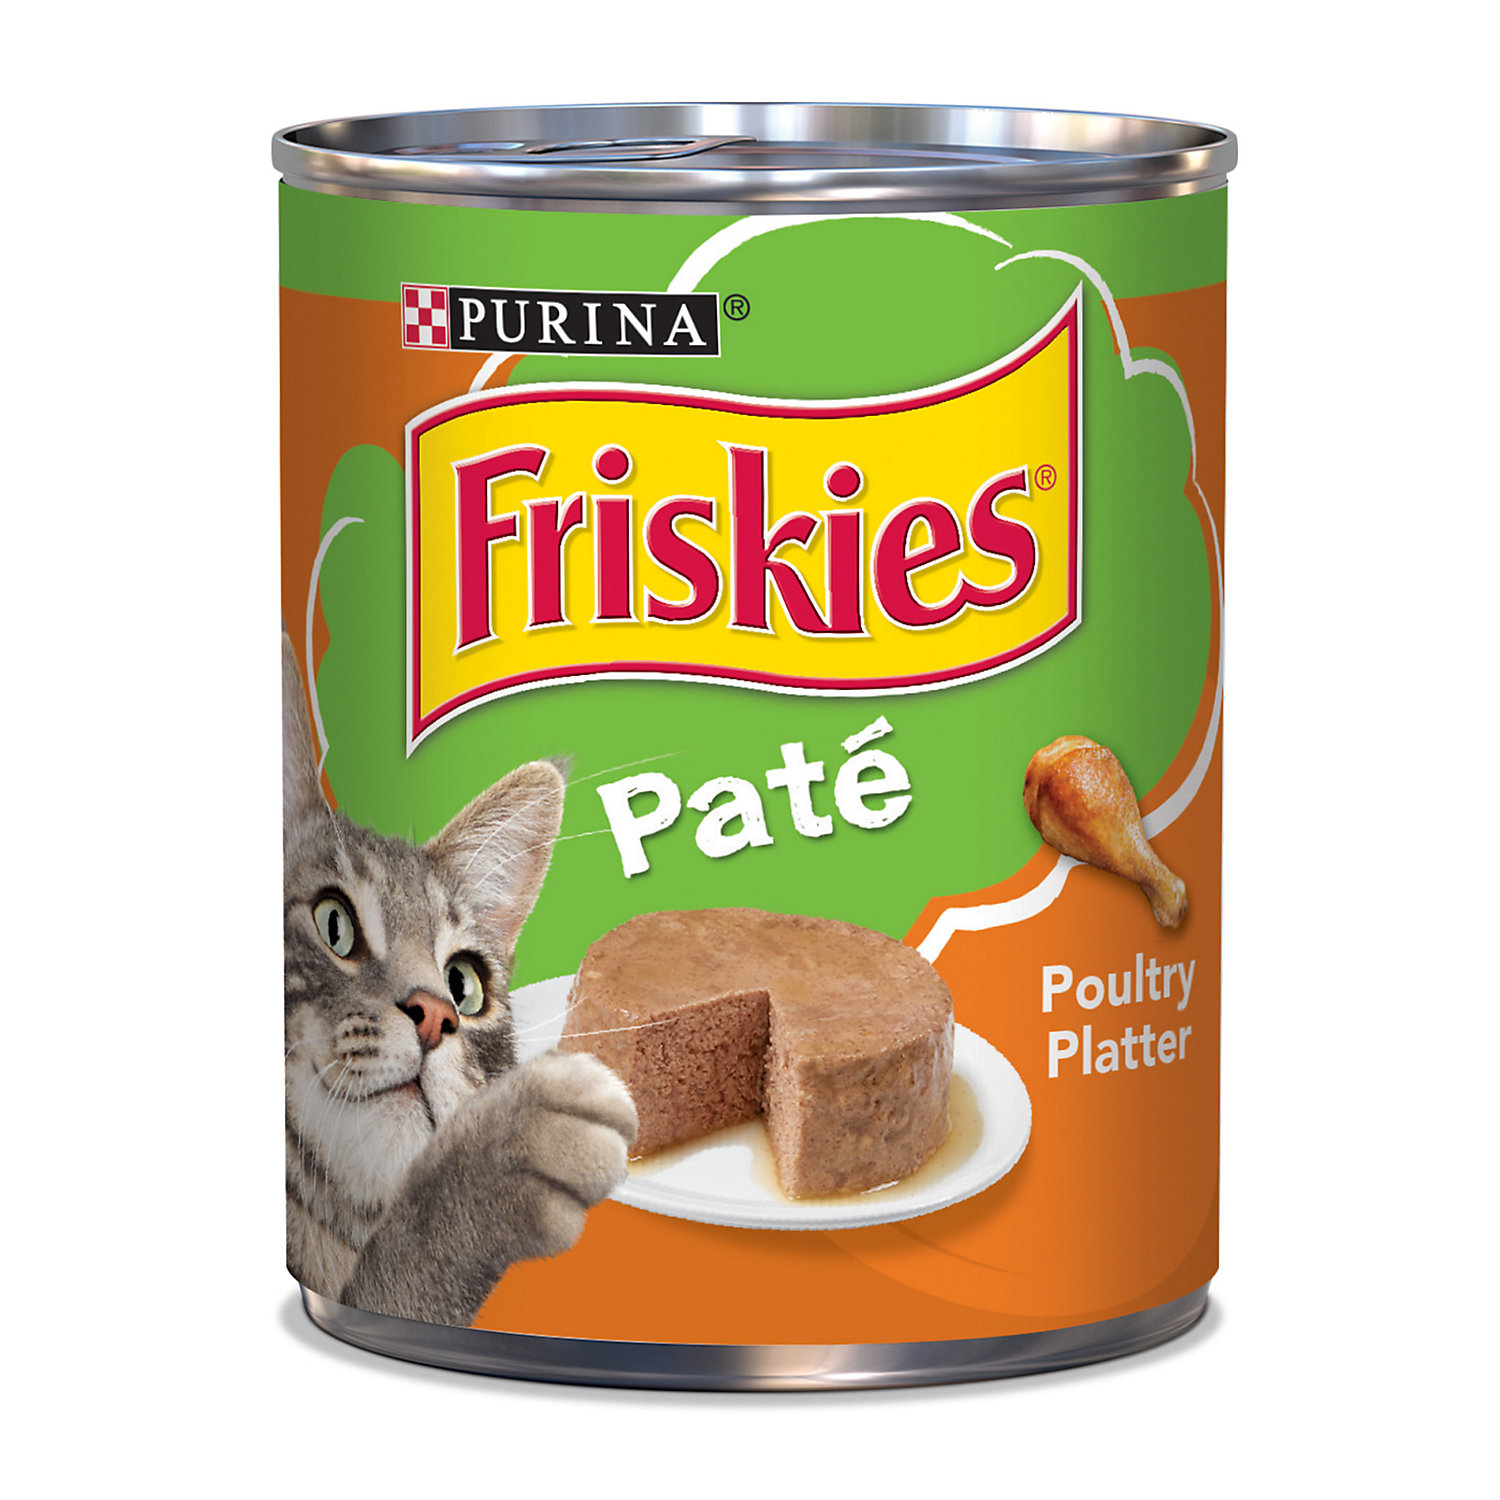 Friskies Poultry Platter Canned Cat Food 13 Oz. Case Of 12